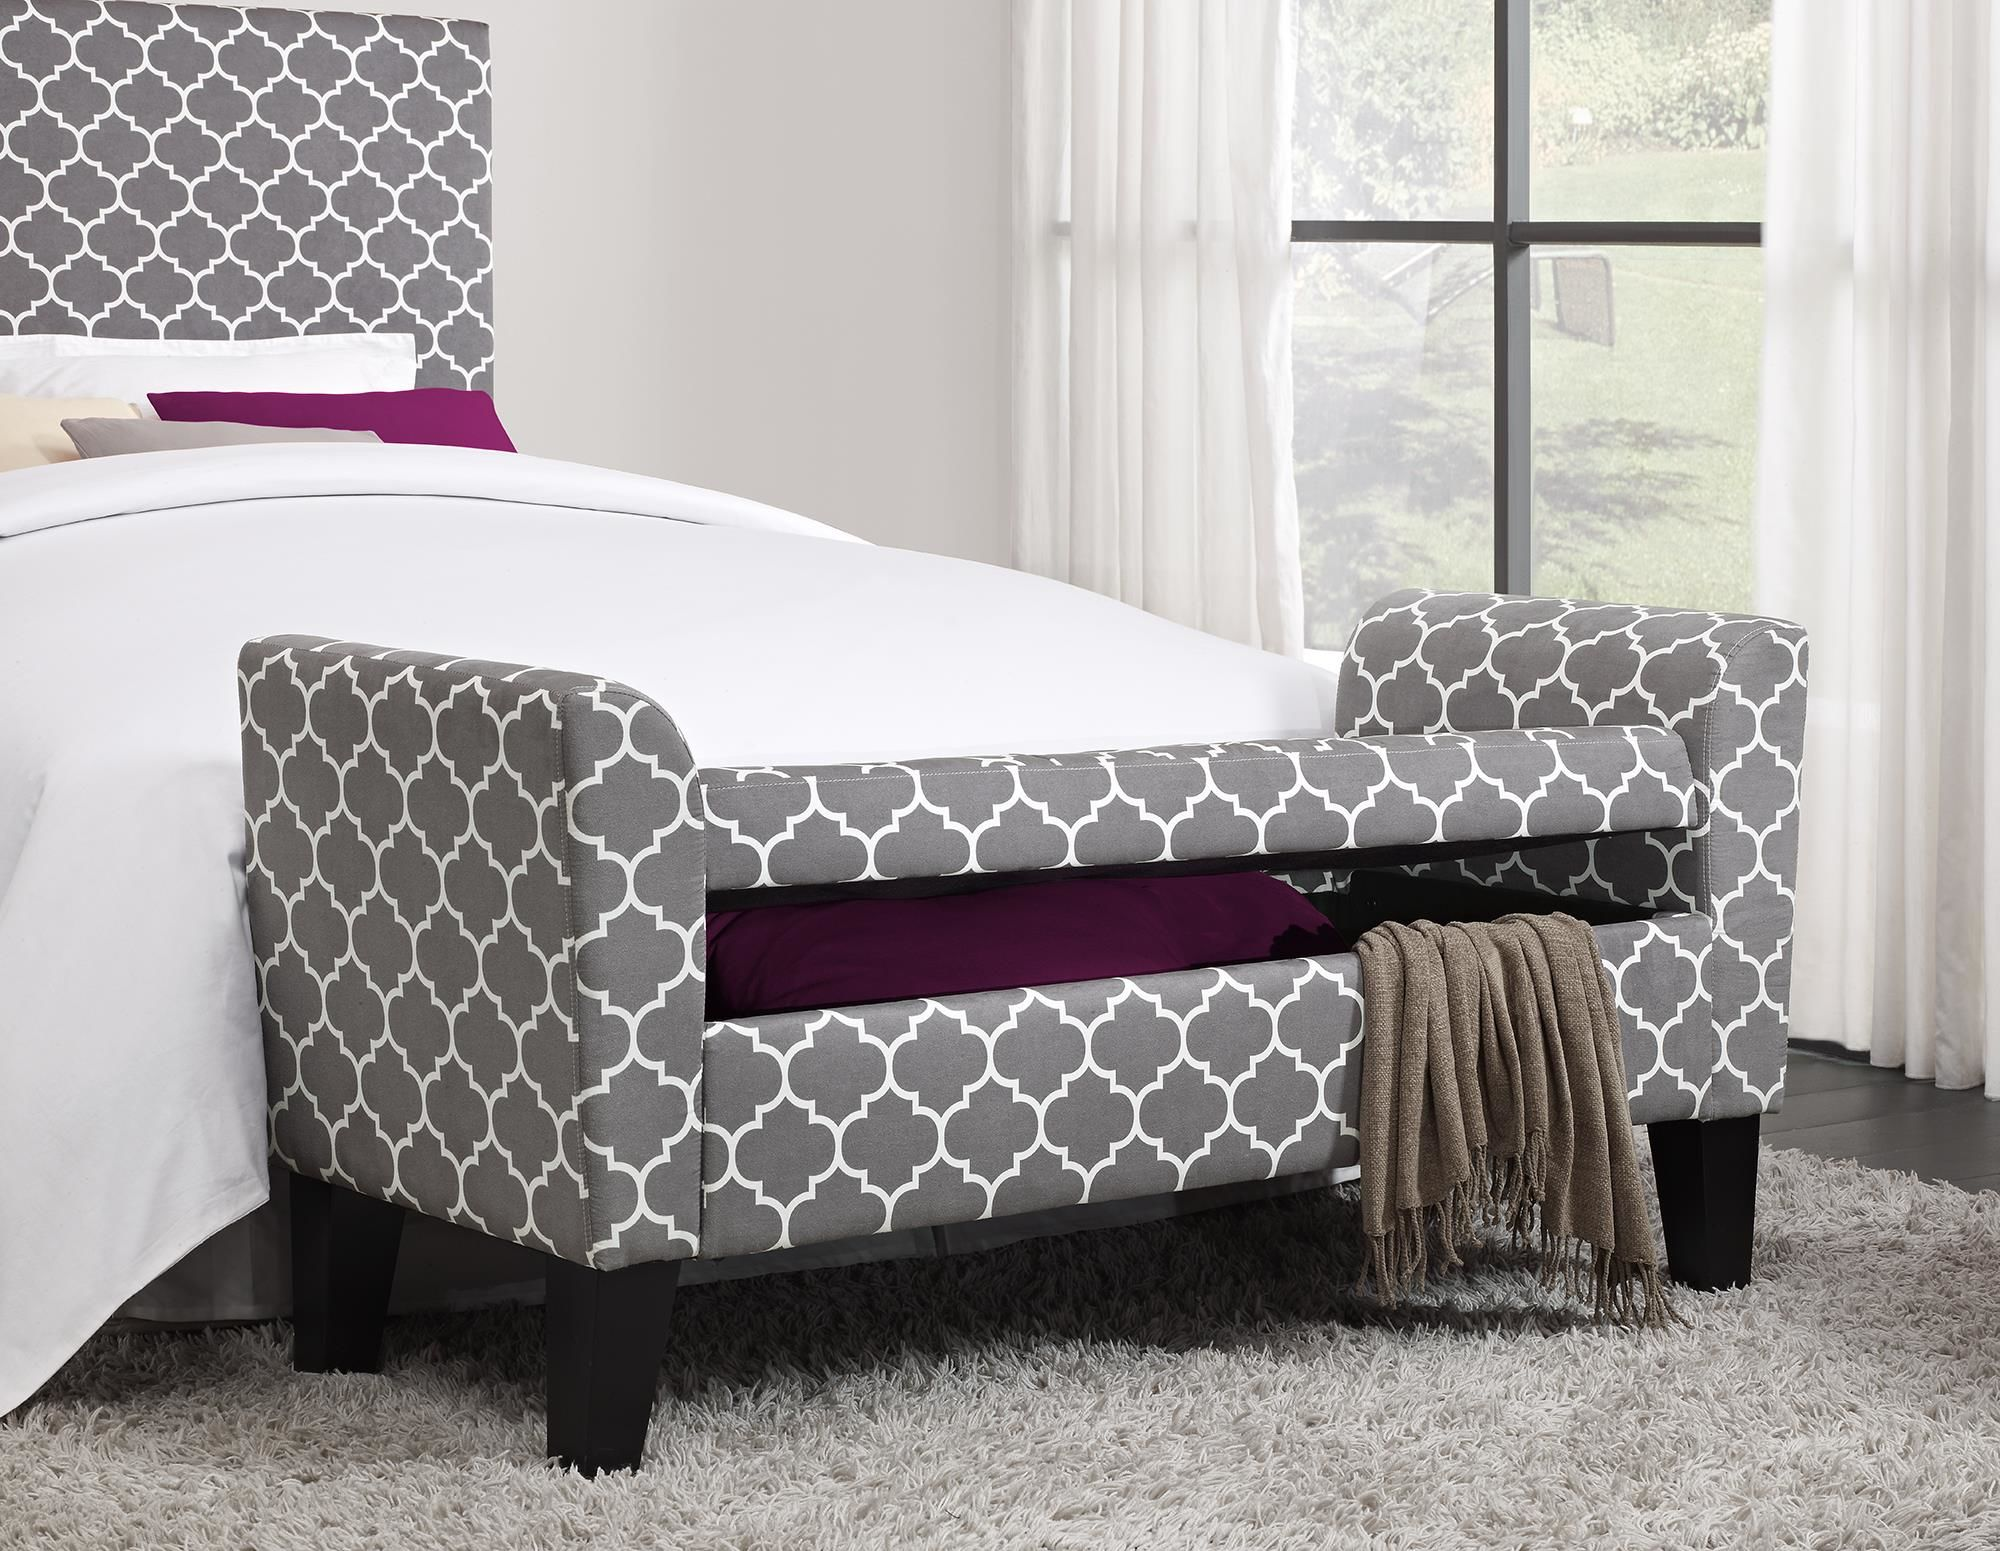 sofa beds at amazon full size sleeper with chaise fresh bed online modern design ideas